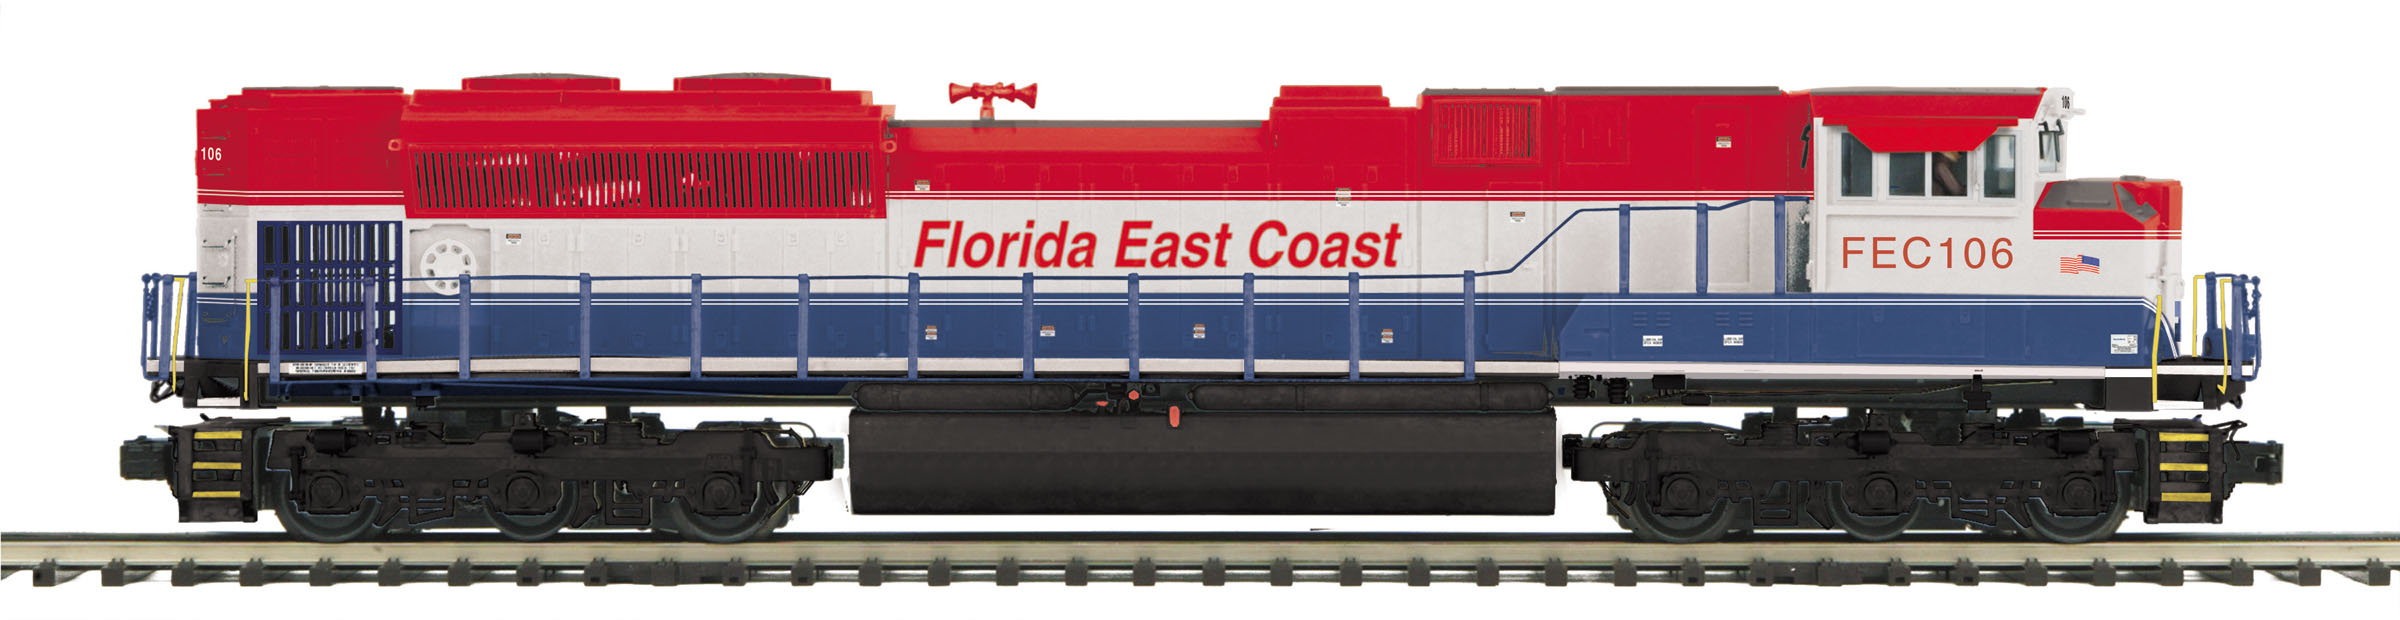 Florida East Coast (Red/White/Blue) SD70M-2 Diesel Engine image